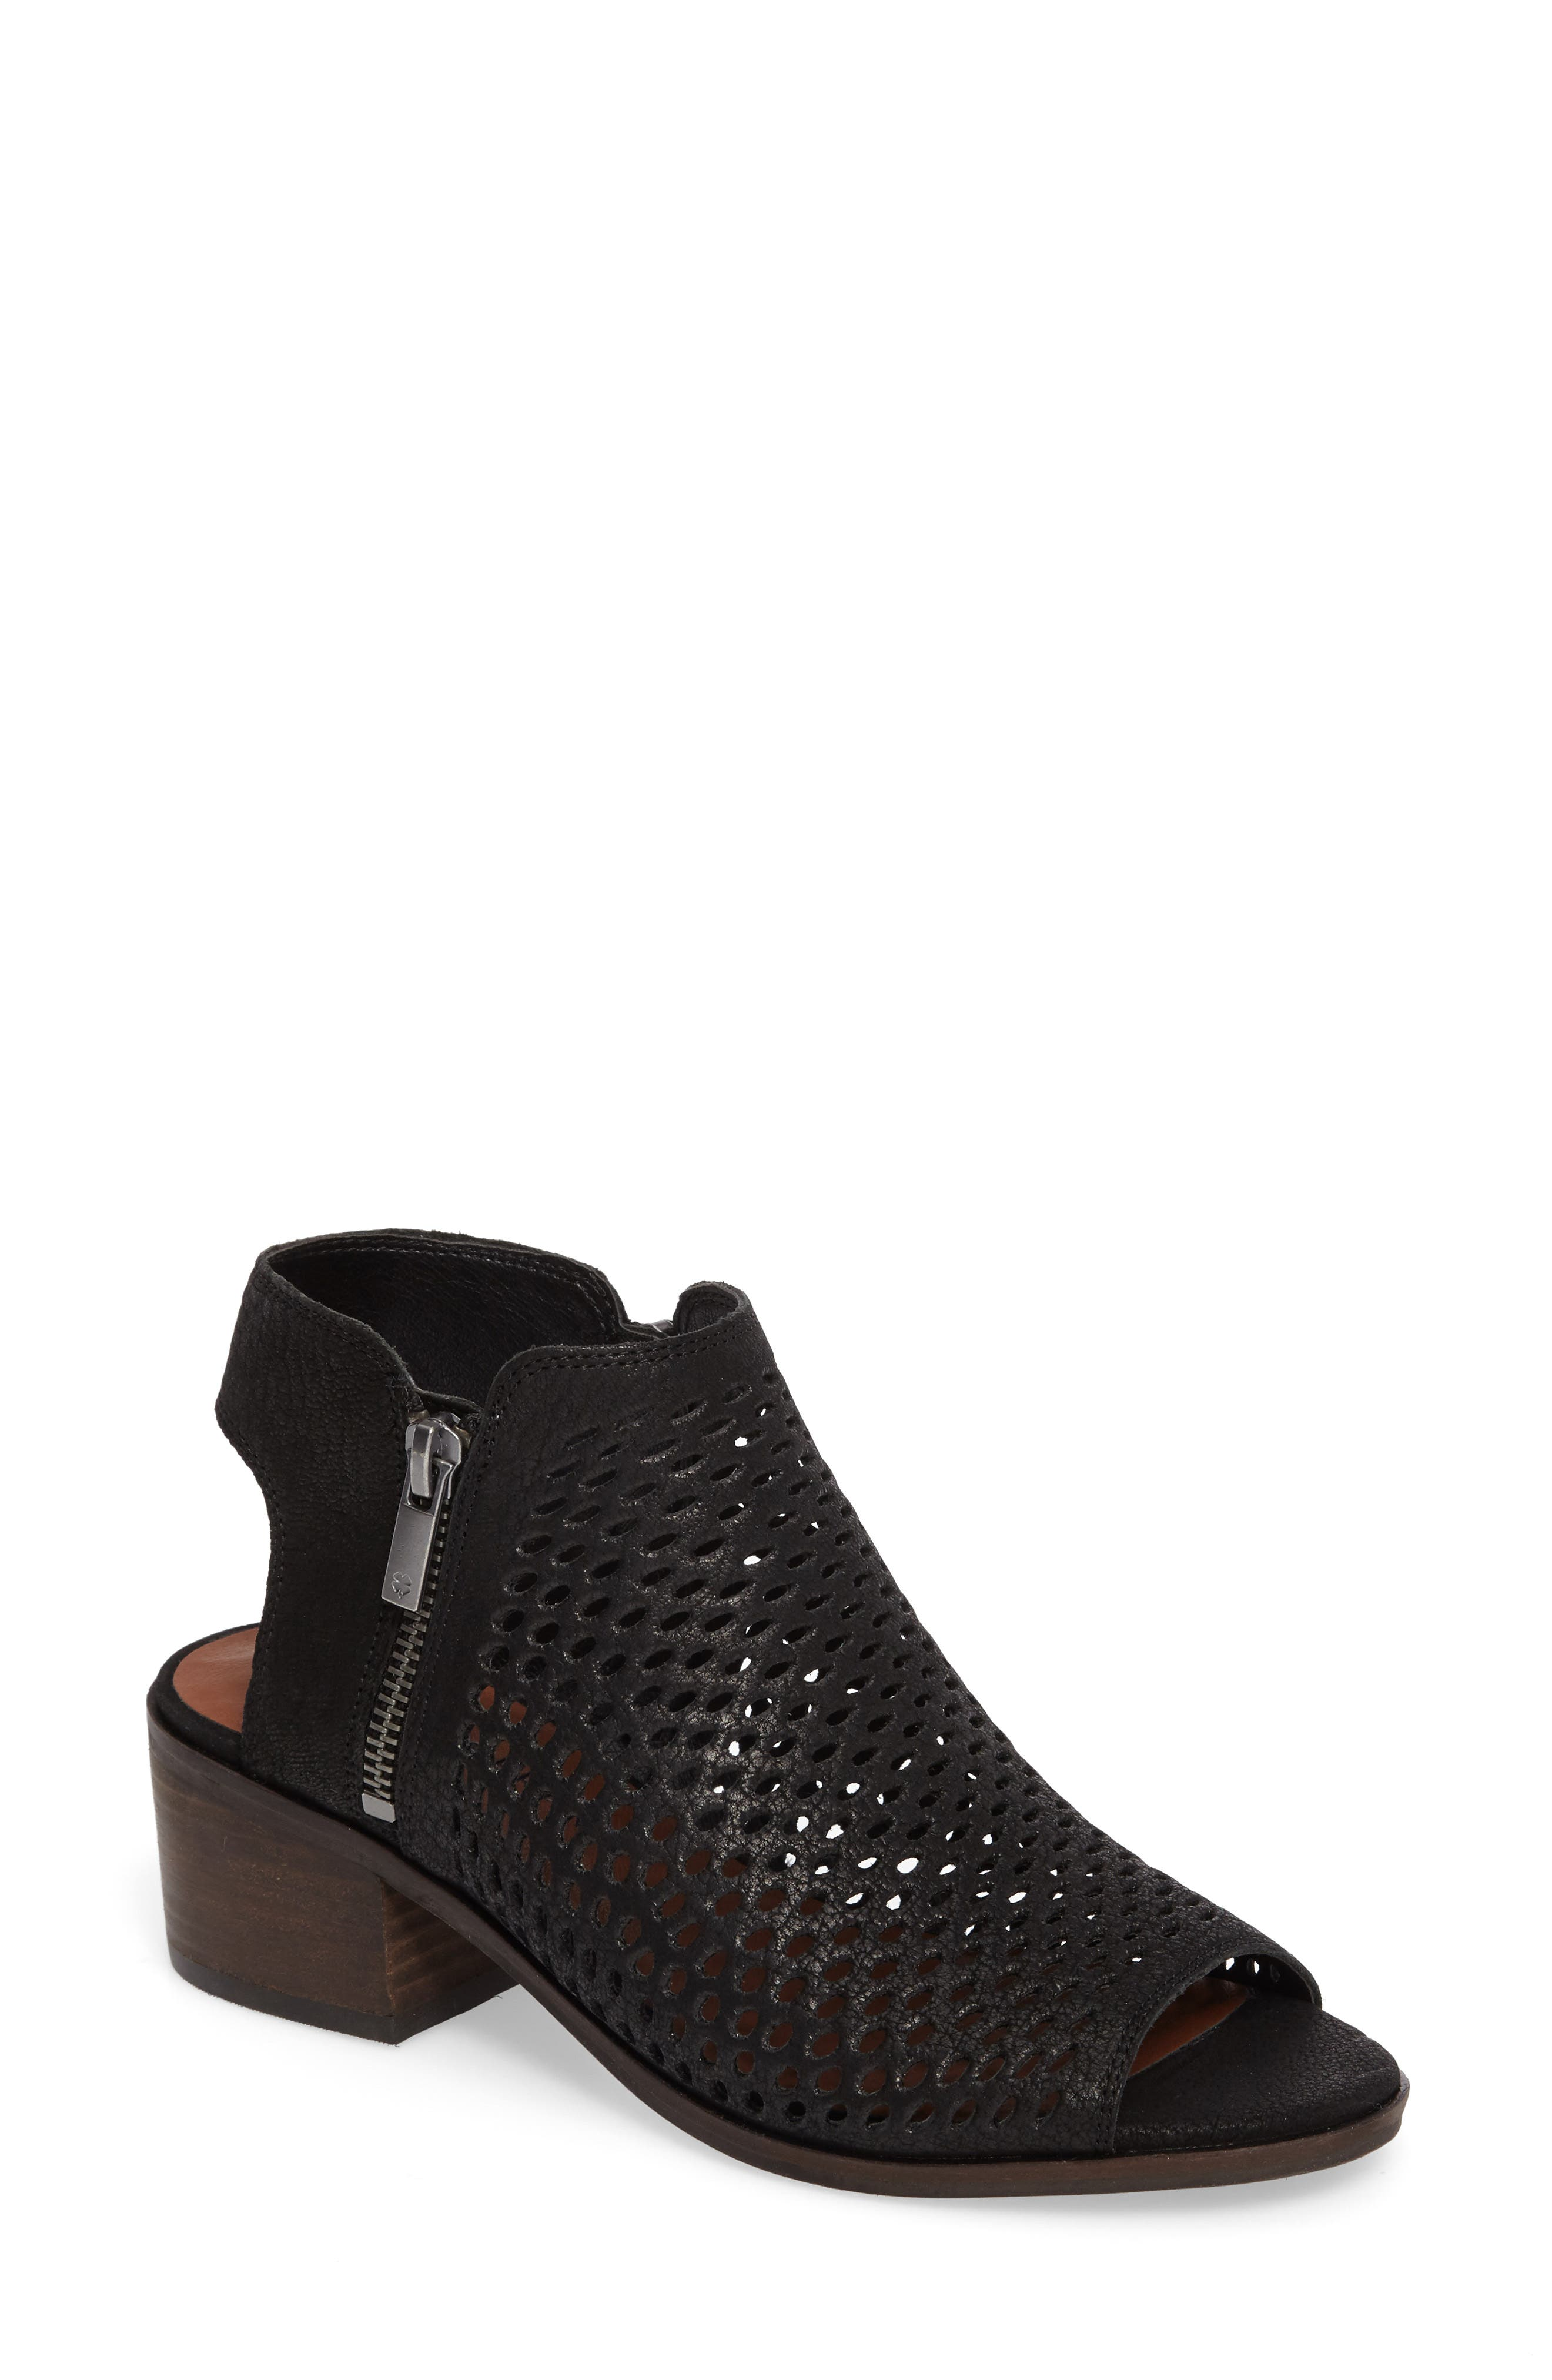 Nelwyna Perforated Bootie Sandal,                         Main,                         color, 001